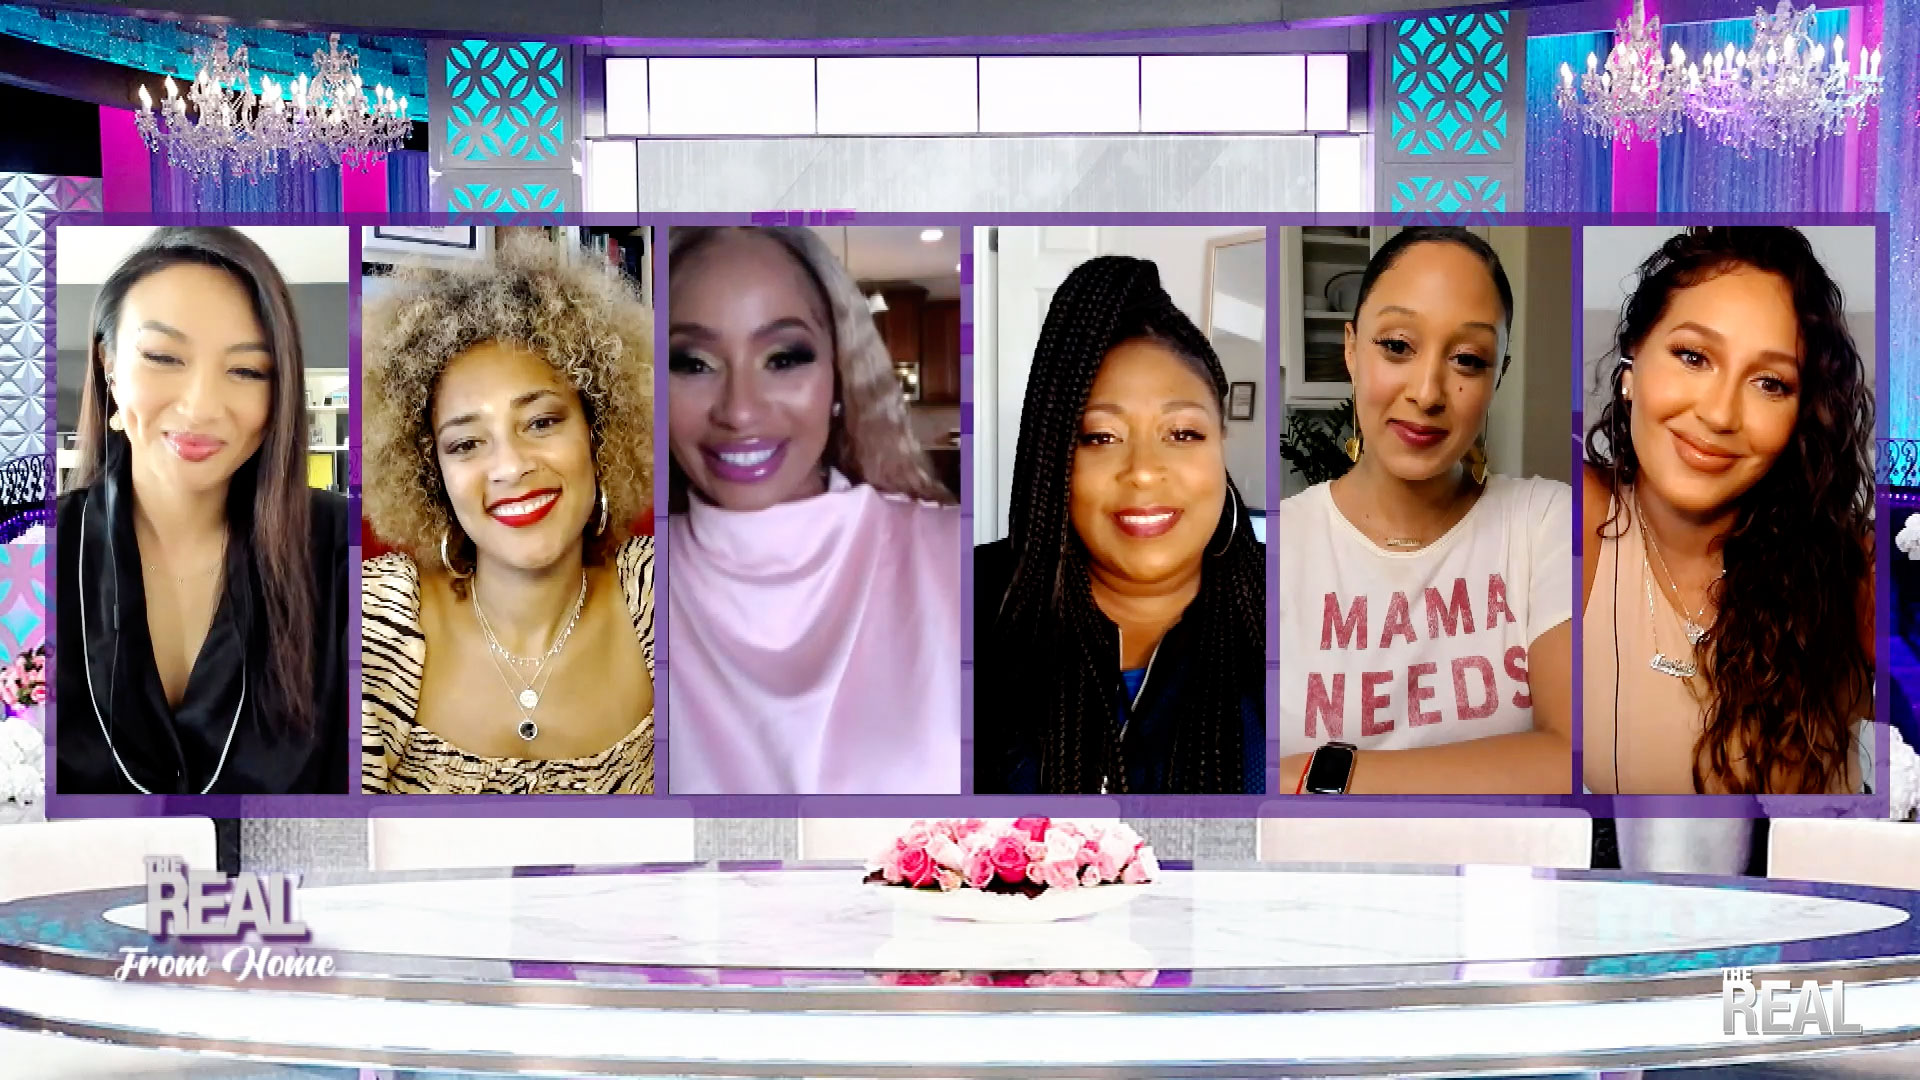 The Real From Home: When Will Everyone Feel Comfortable At Public Events Again? And Karlie Redd Discusses Keeping Her Atlanta Stores Closed